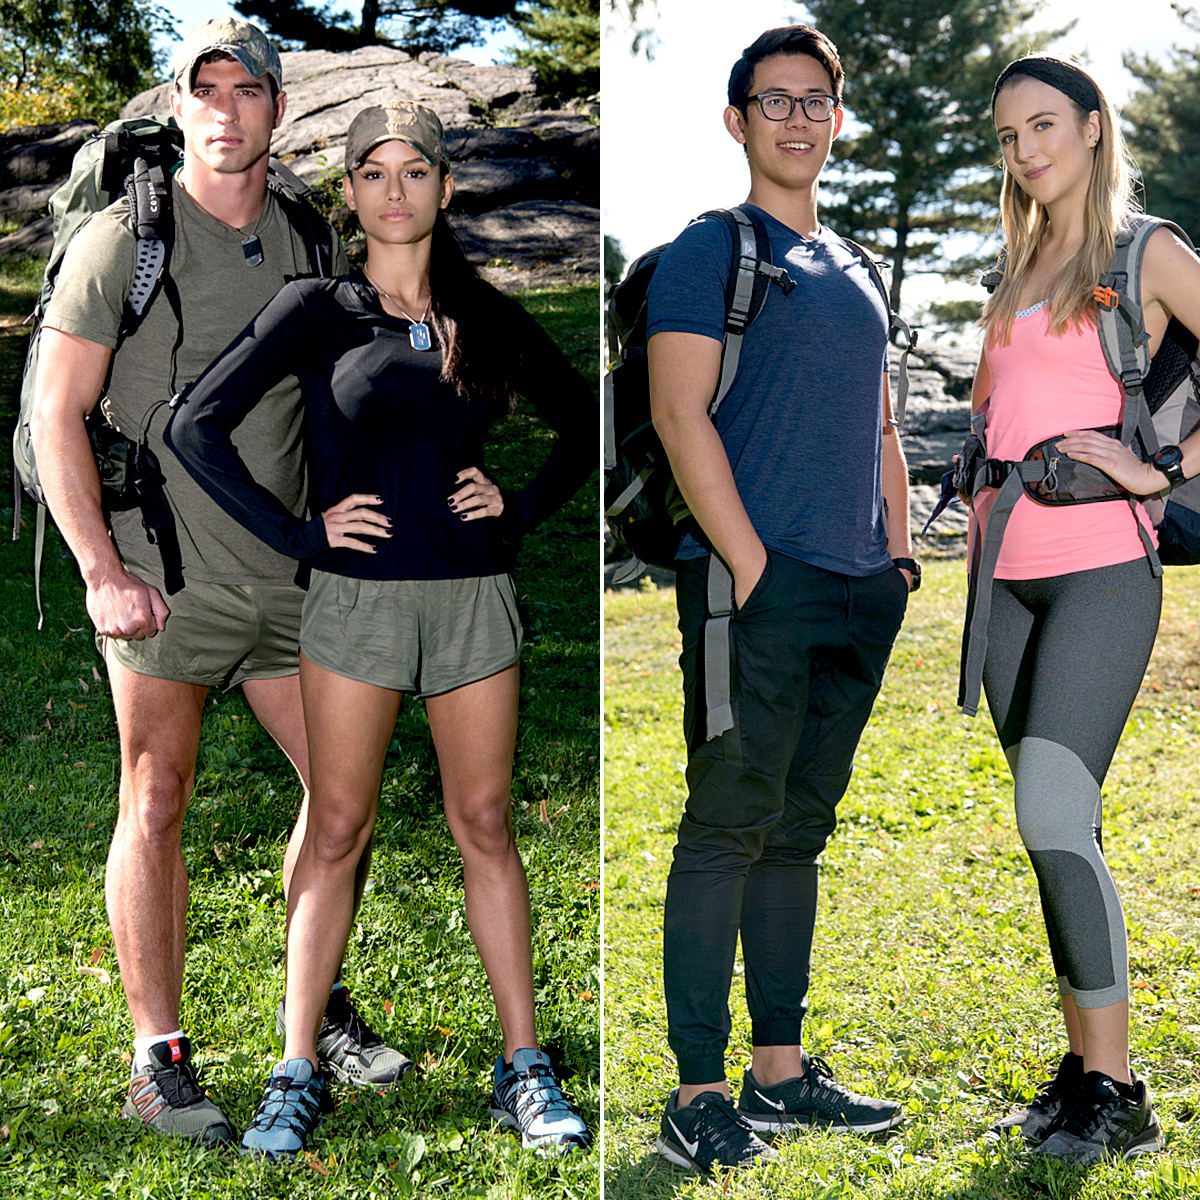 Amazing race winners 2018 are they dating